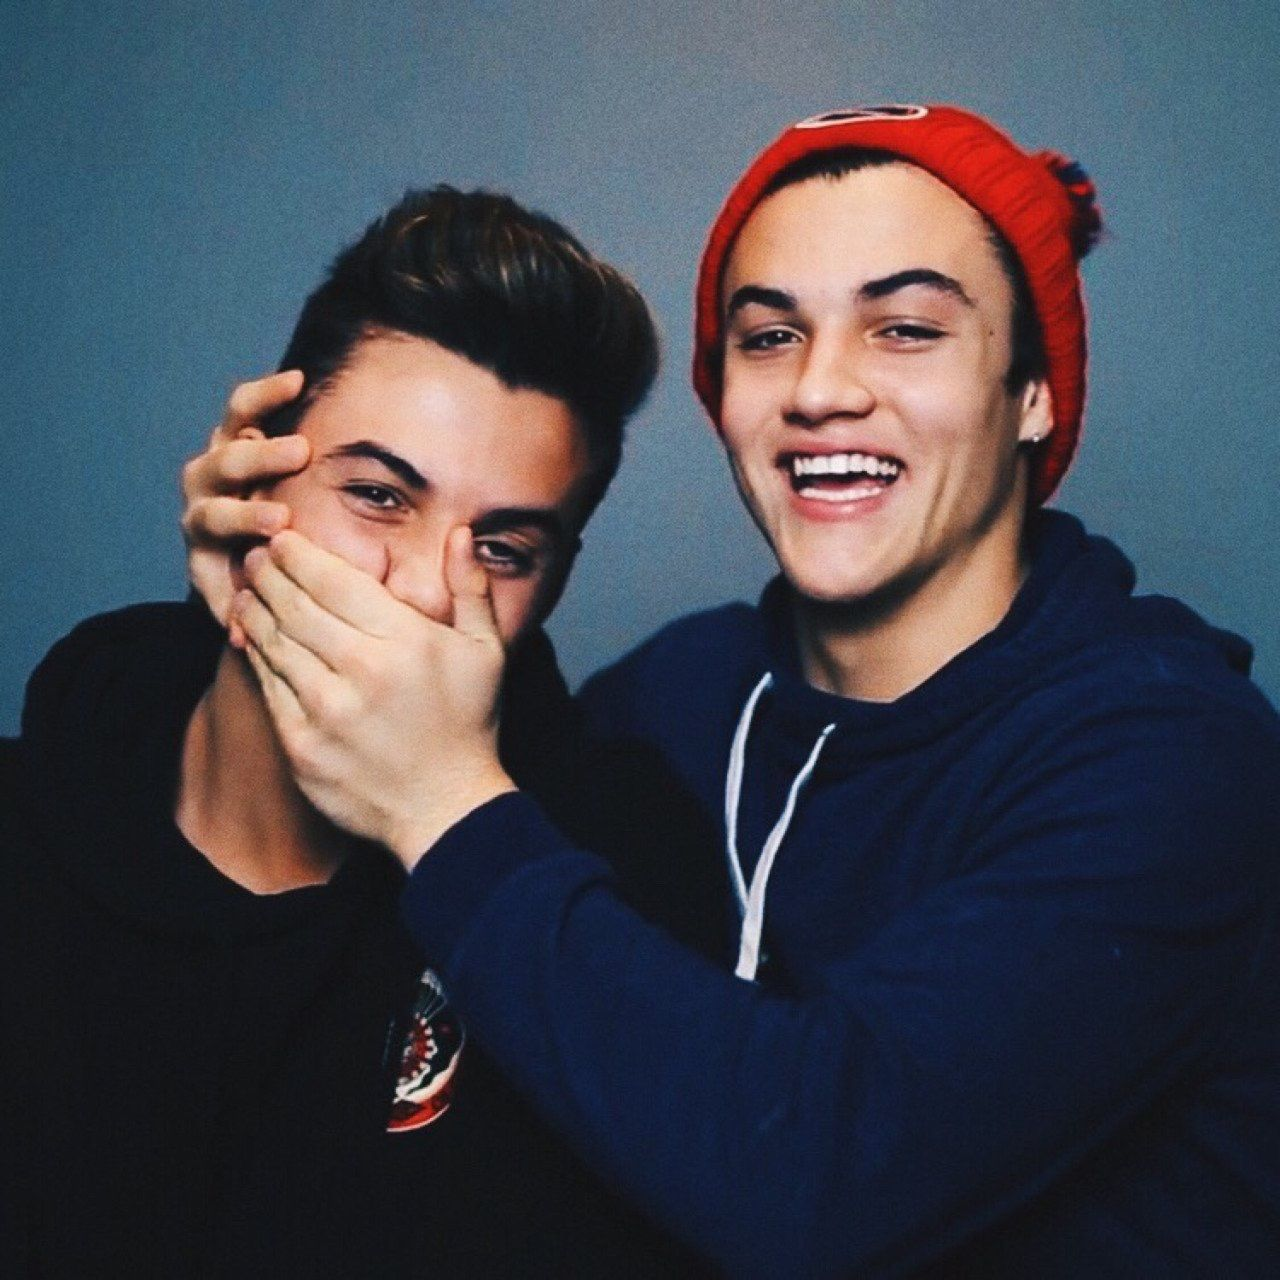 I Would Do Anything To Meet Them Handgag MM T Twins